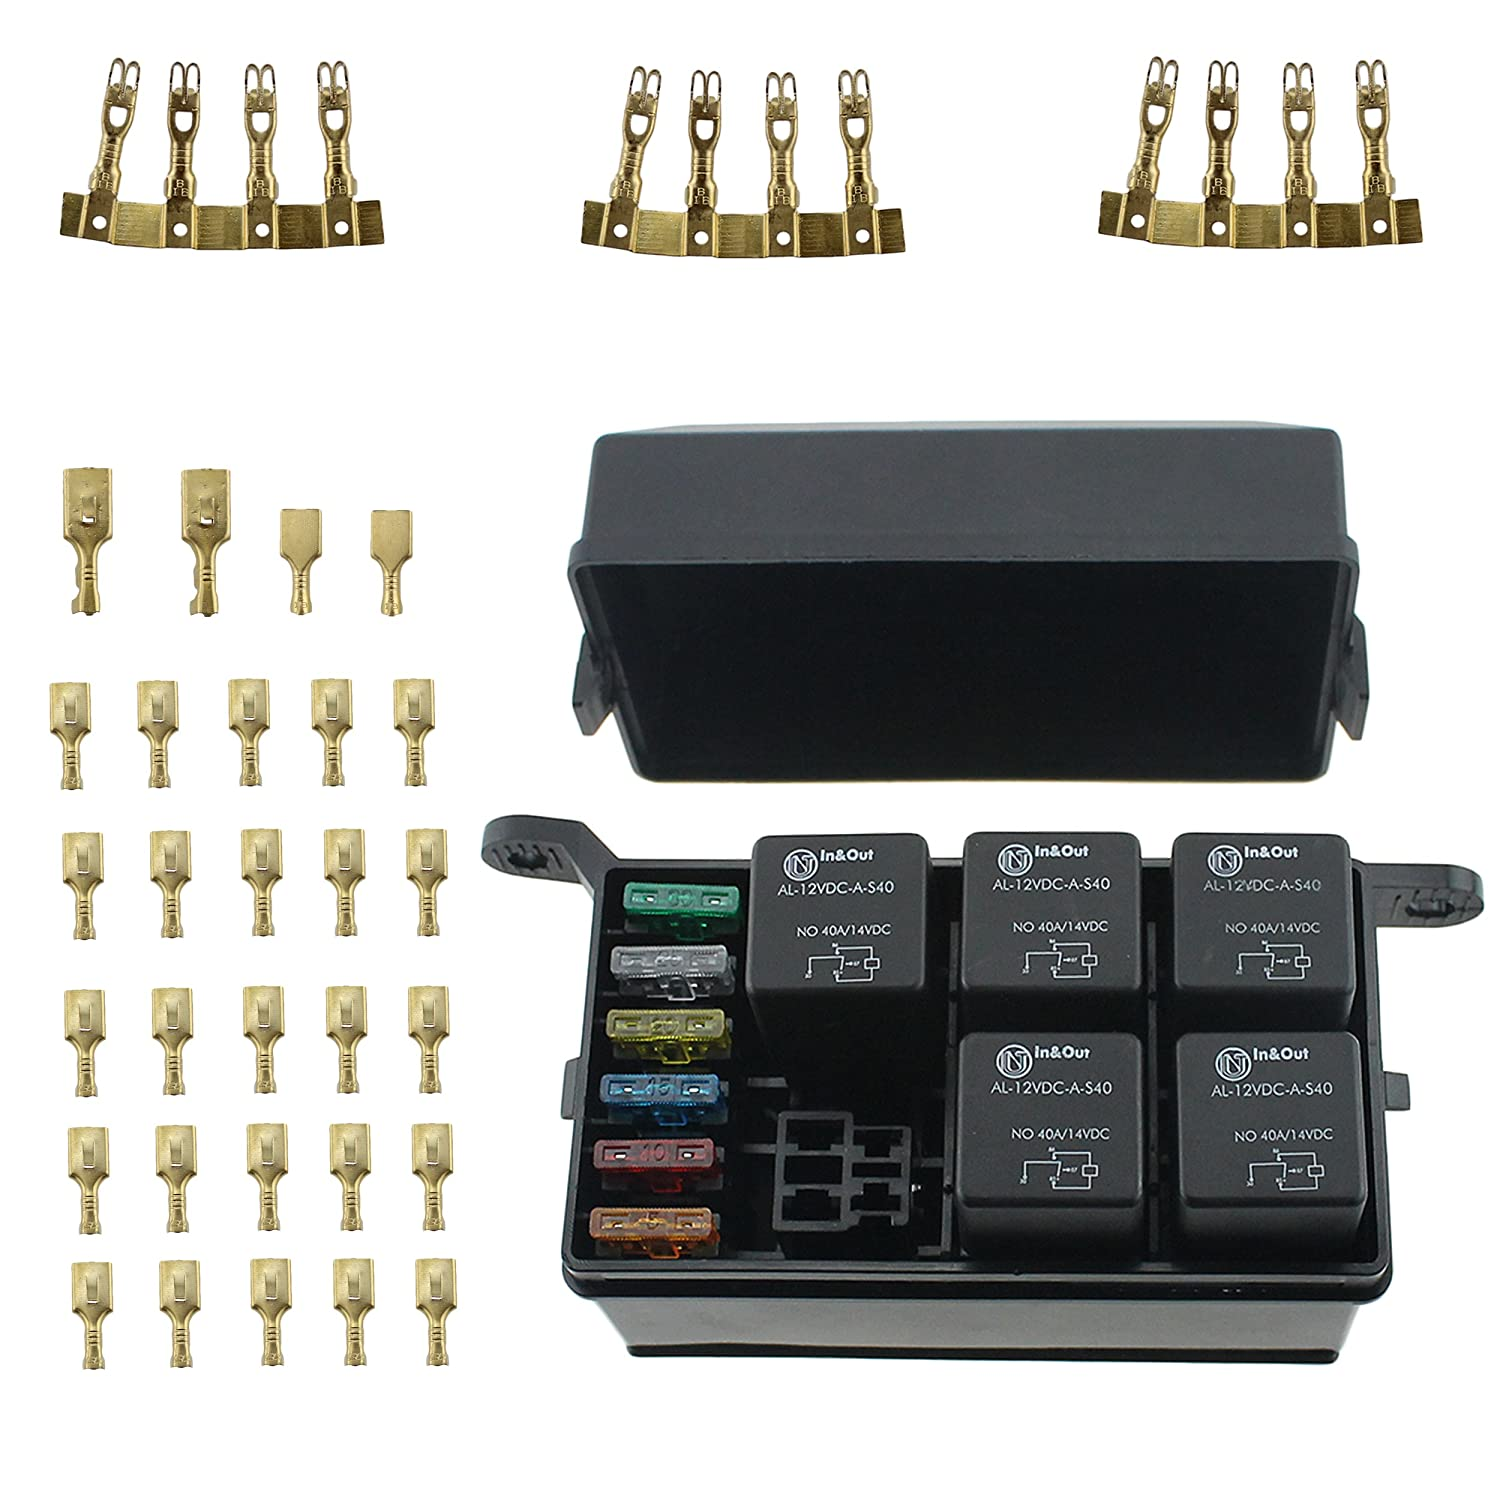 81Uj6Pmk1gL._SL1500_ amazon com fuse boxes fuses & accessories automotive 1969 c10 fuse box diagram at edmiracle.co